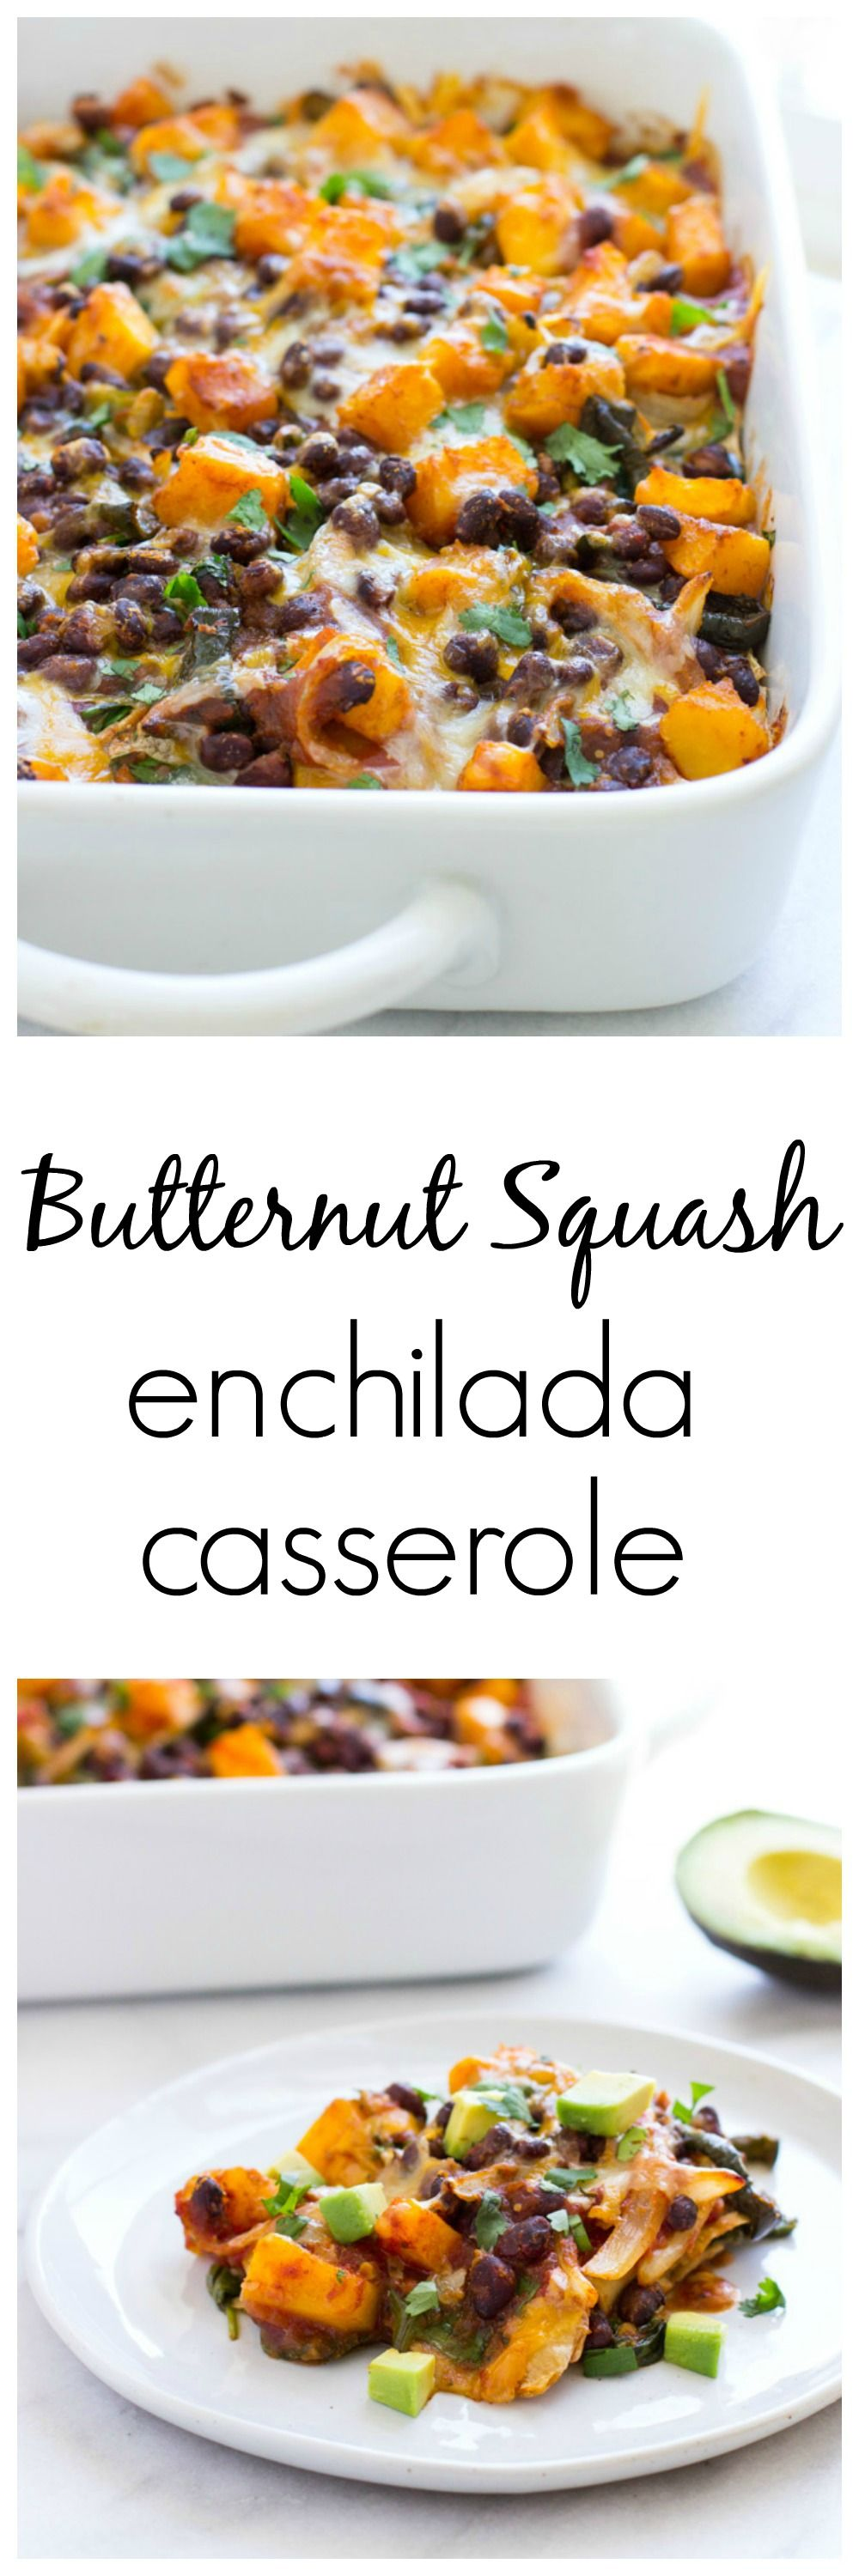 Butternut Squash Enchilada Casserole- roasted butternut squash layered with tortillas, peppers, black beans and enchilada sauce. Makes for an irresistible casserole that's sure to please a crowd! How are you guys holding up so far this week? I know this time of year can be challenging, with the dark mornings and shorter days. I feel …